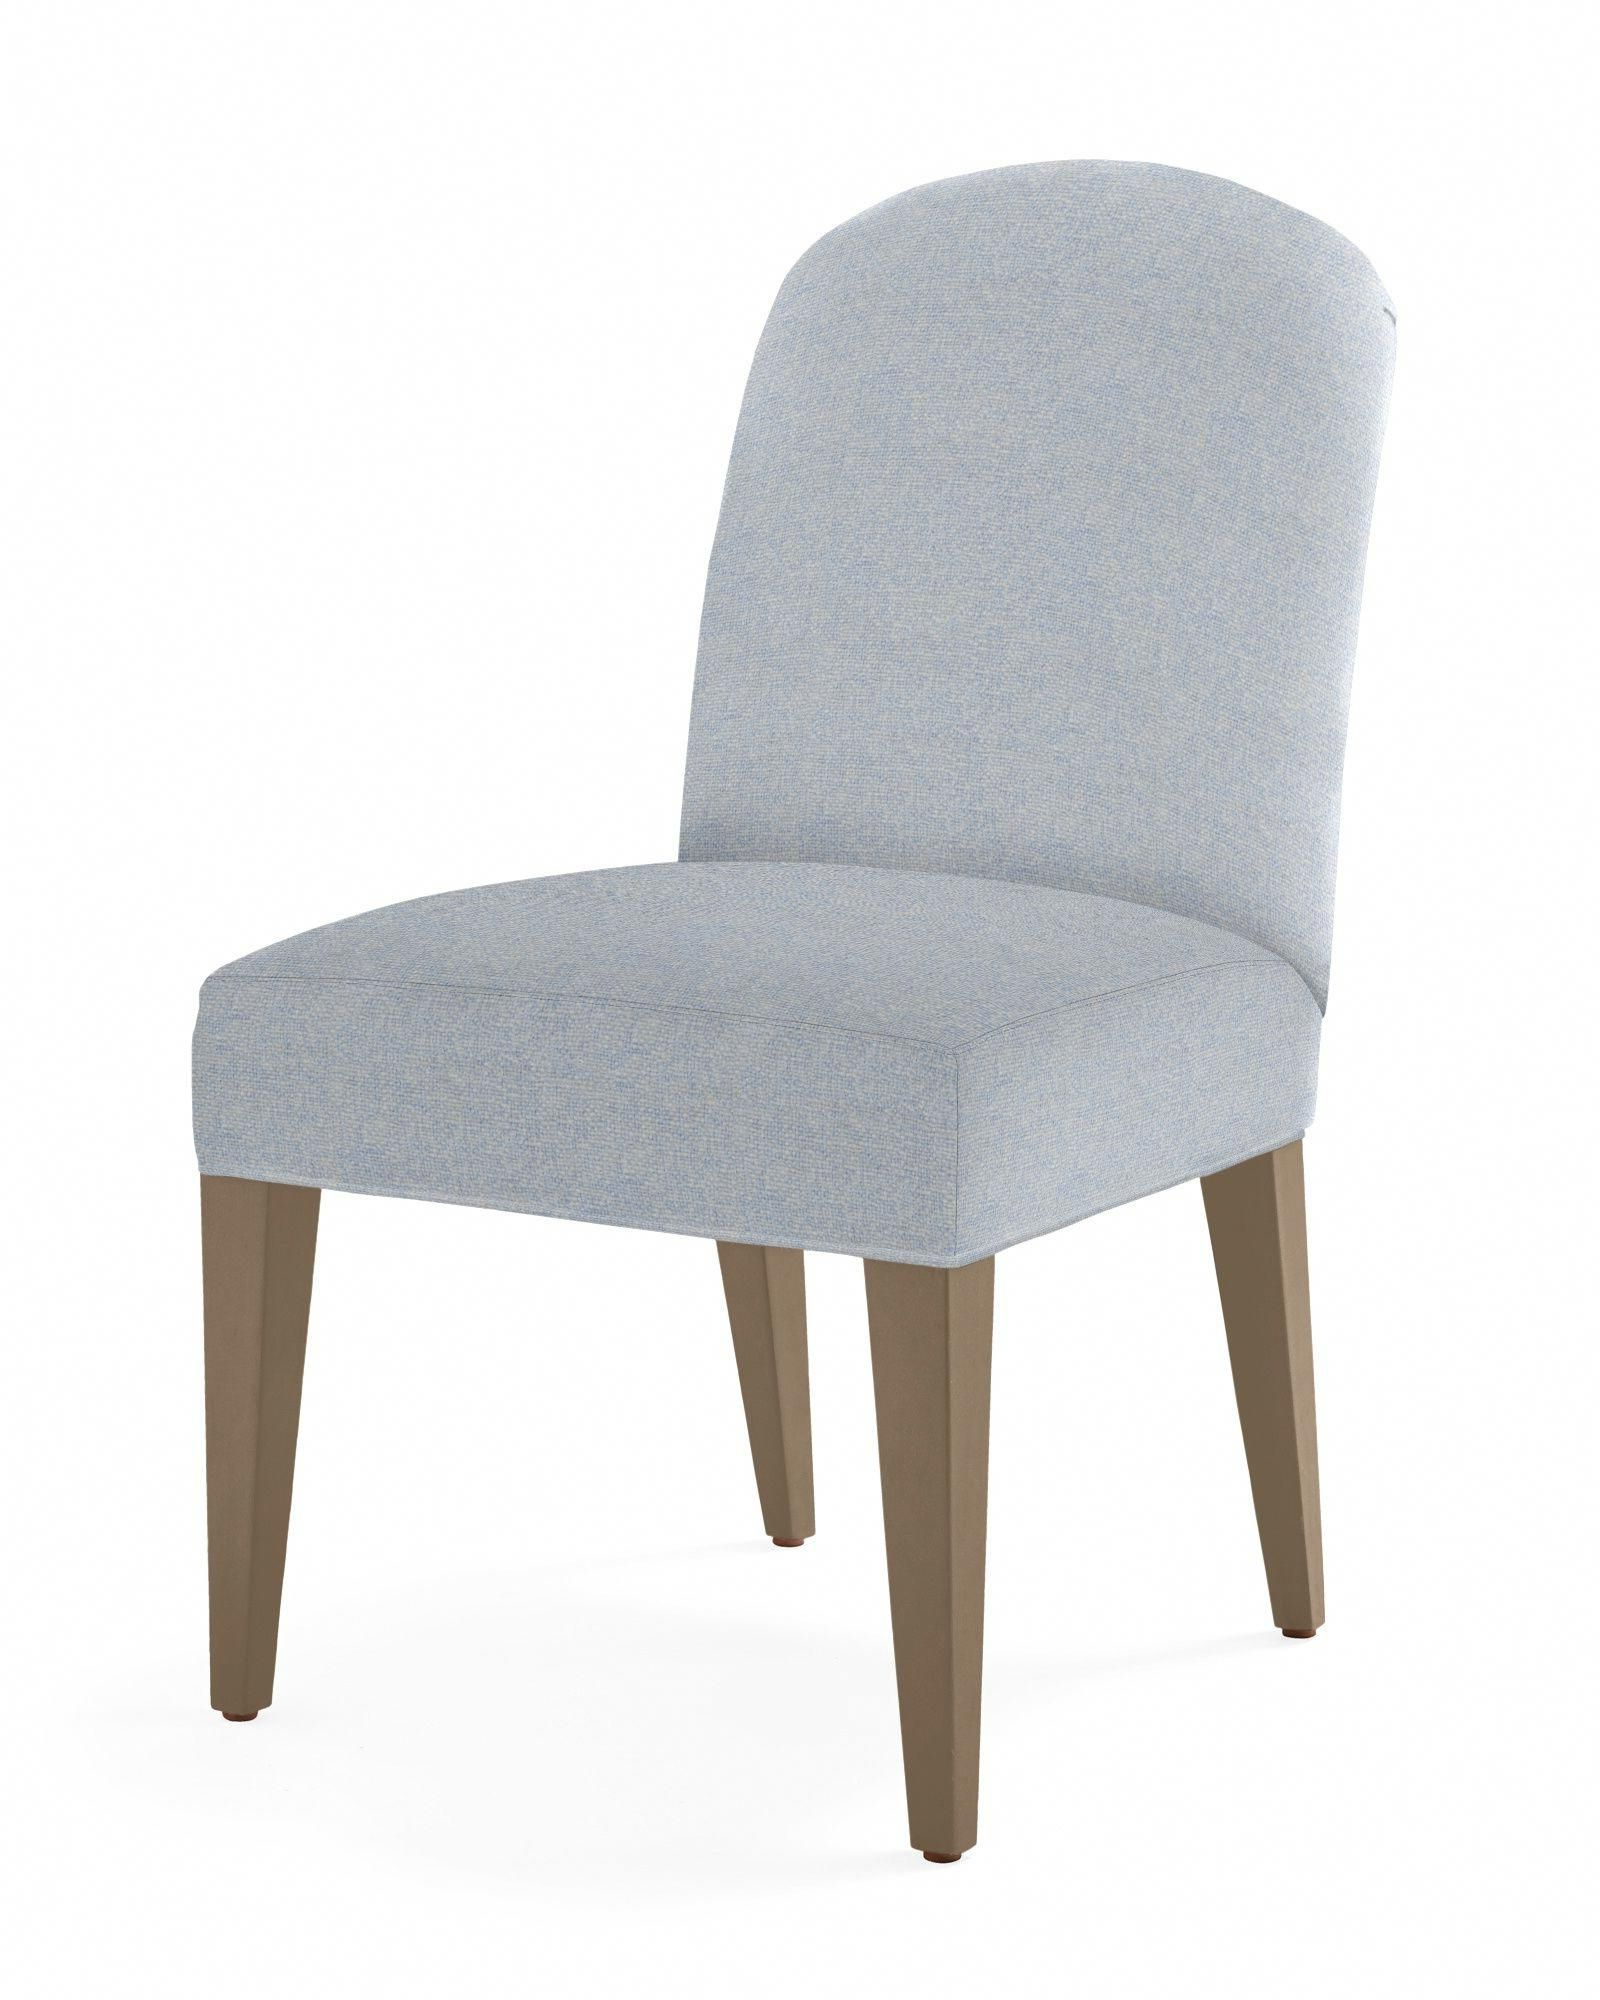 Styling Chairs Regarding Ames Arm Sofa Chairs (View 17 of 20)